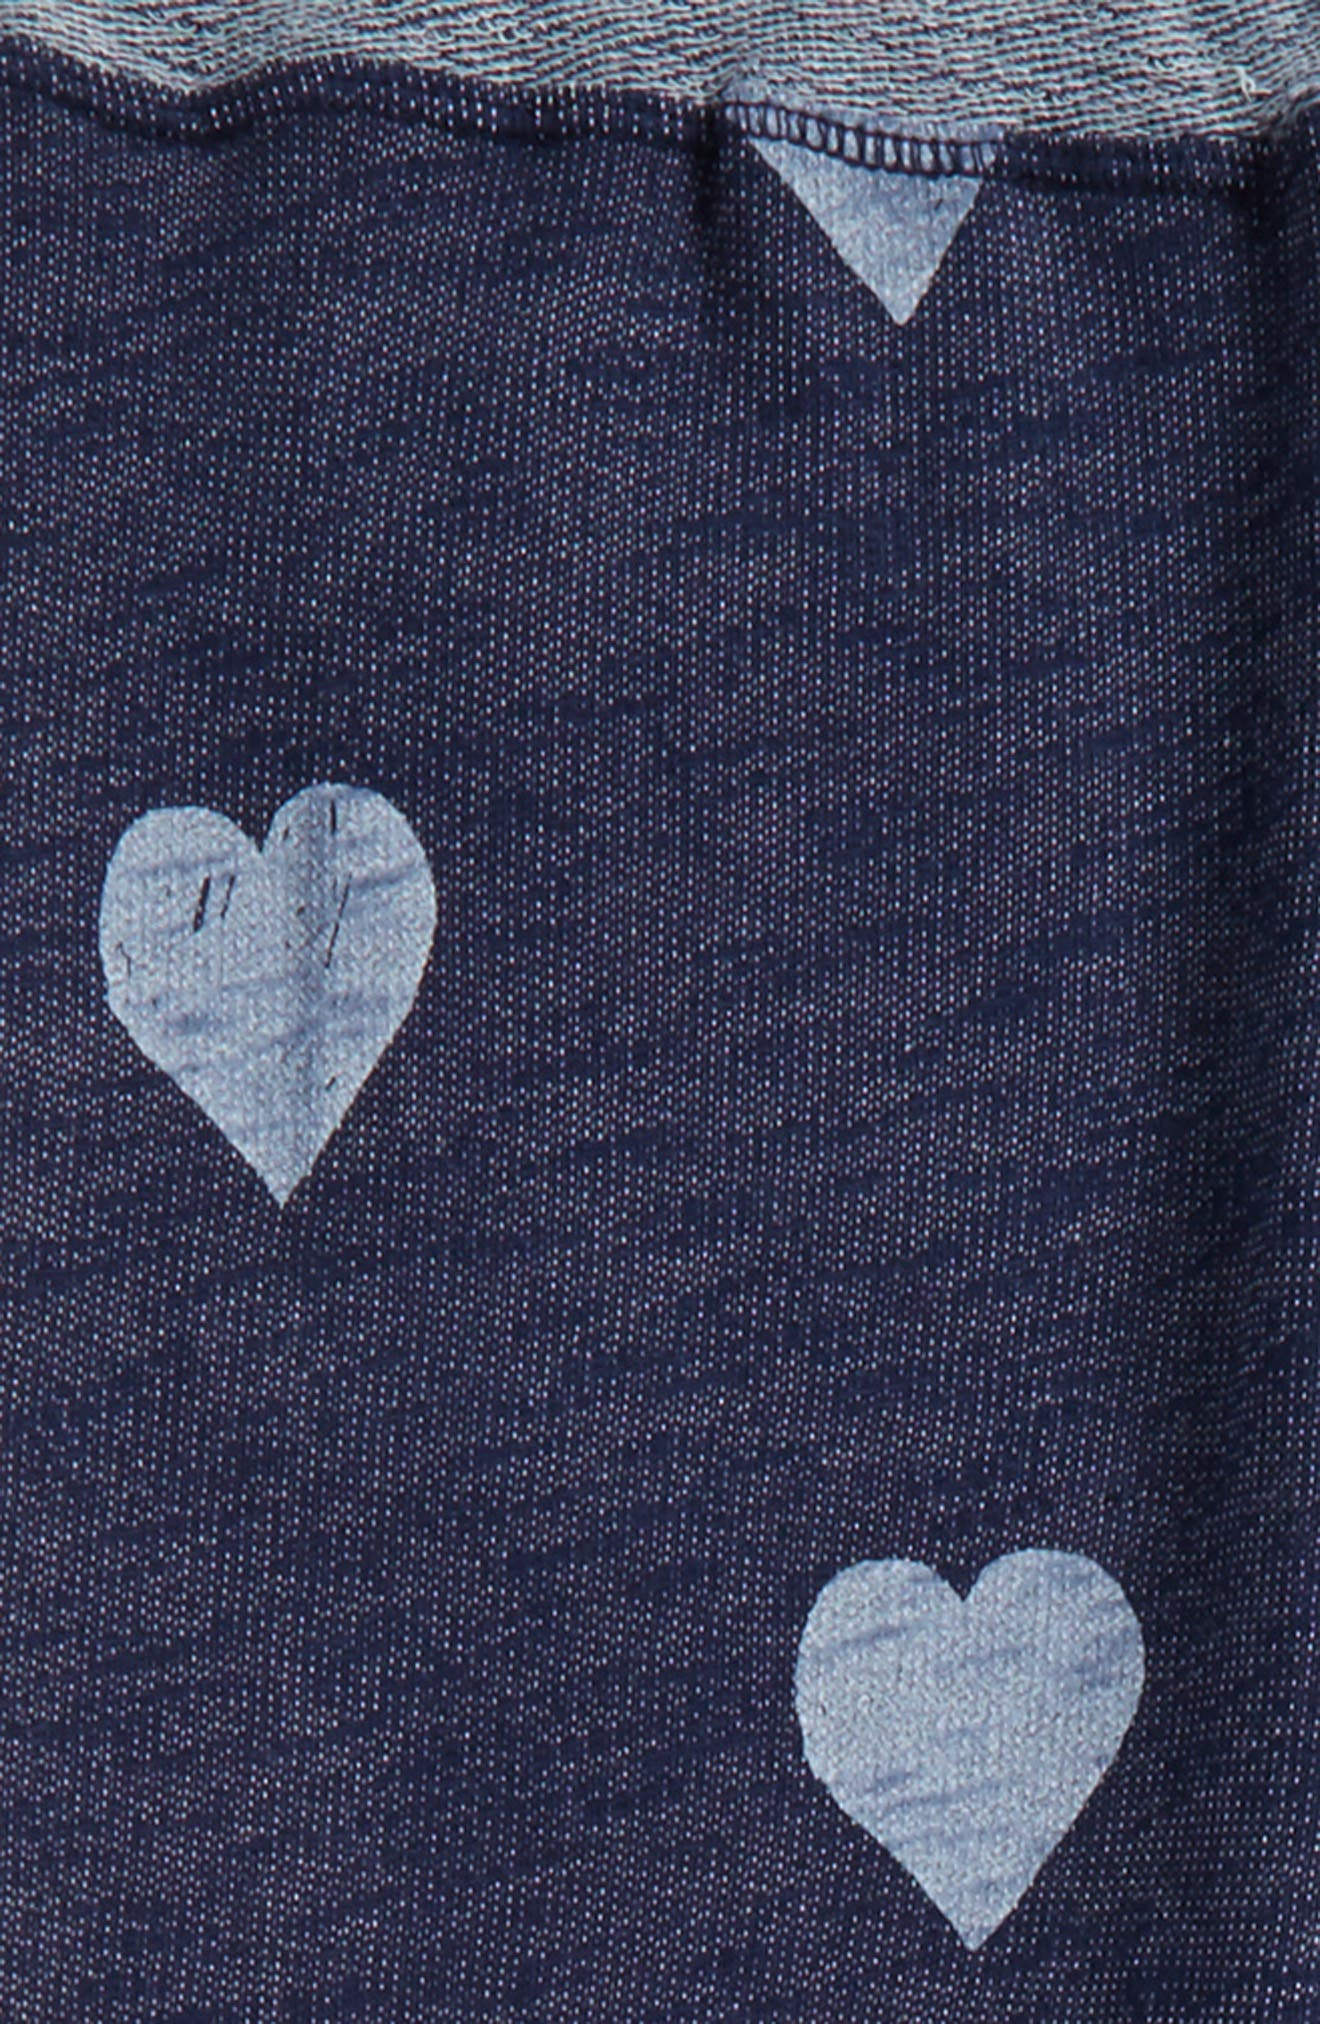 Heart Print Sweatpants,                             Alternate thumbnail 2, color,                             Indigo